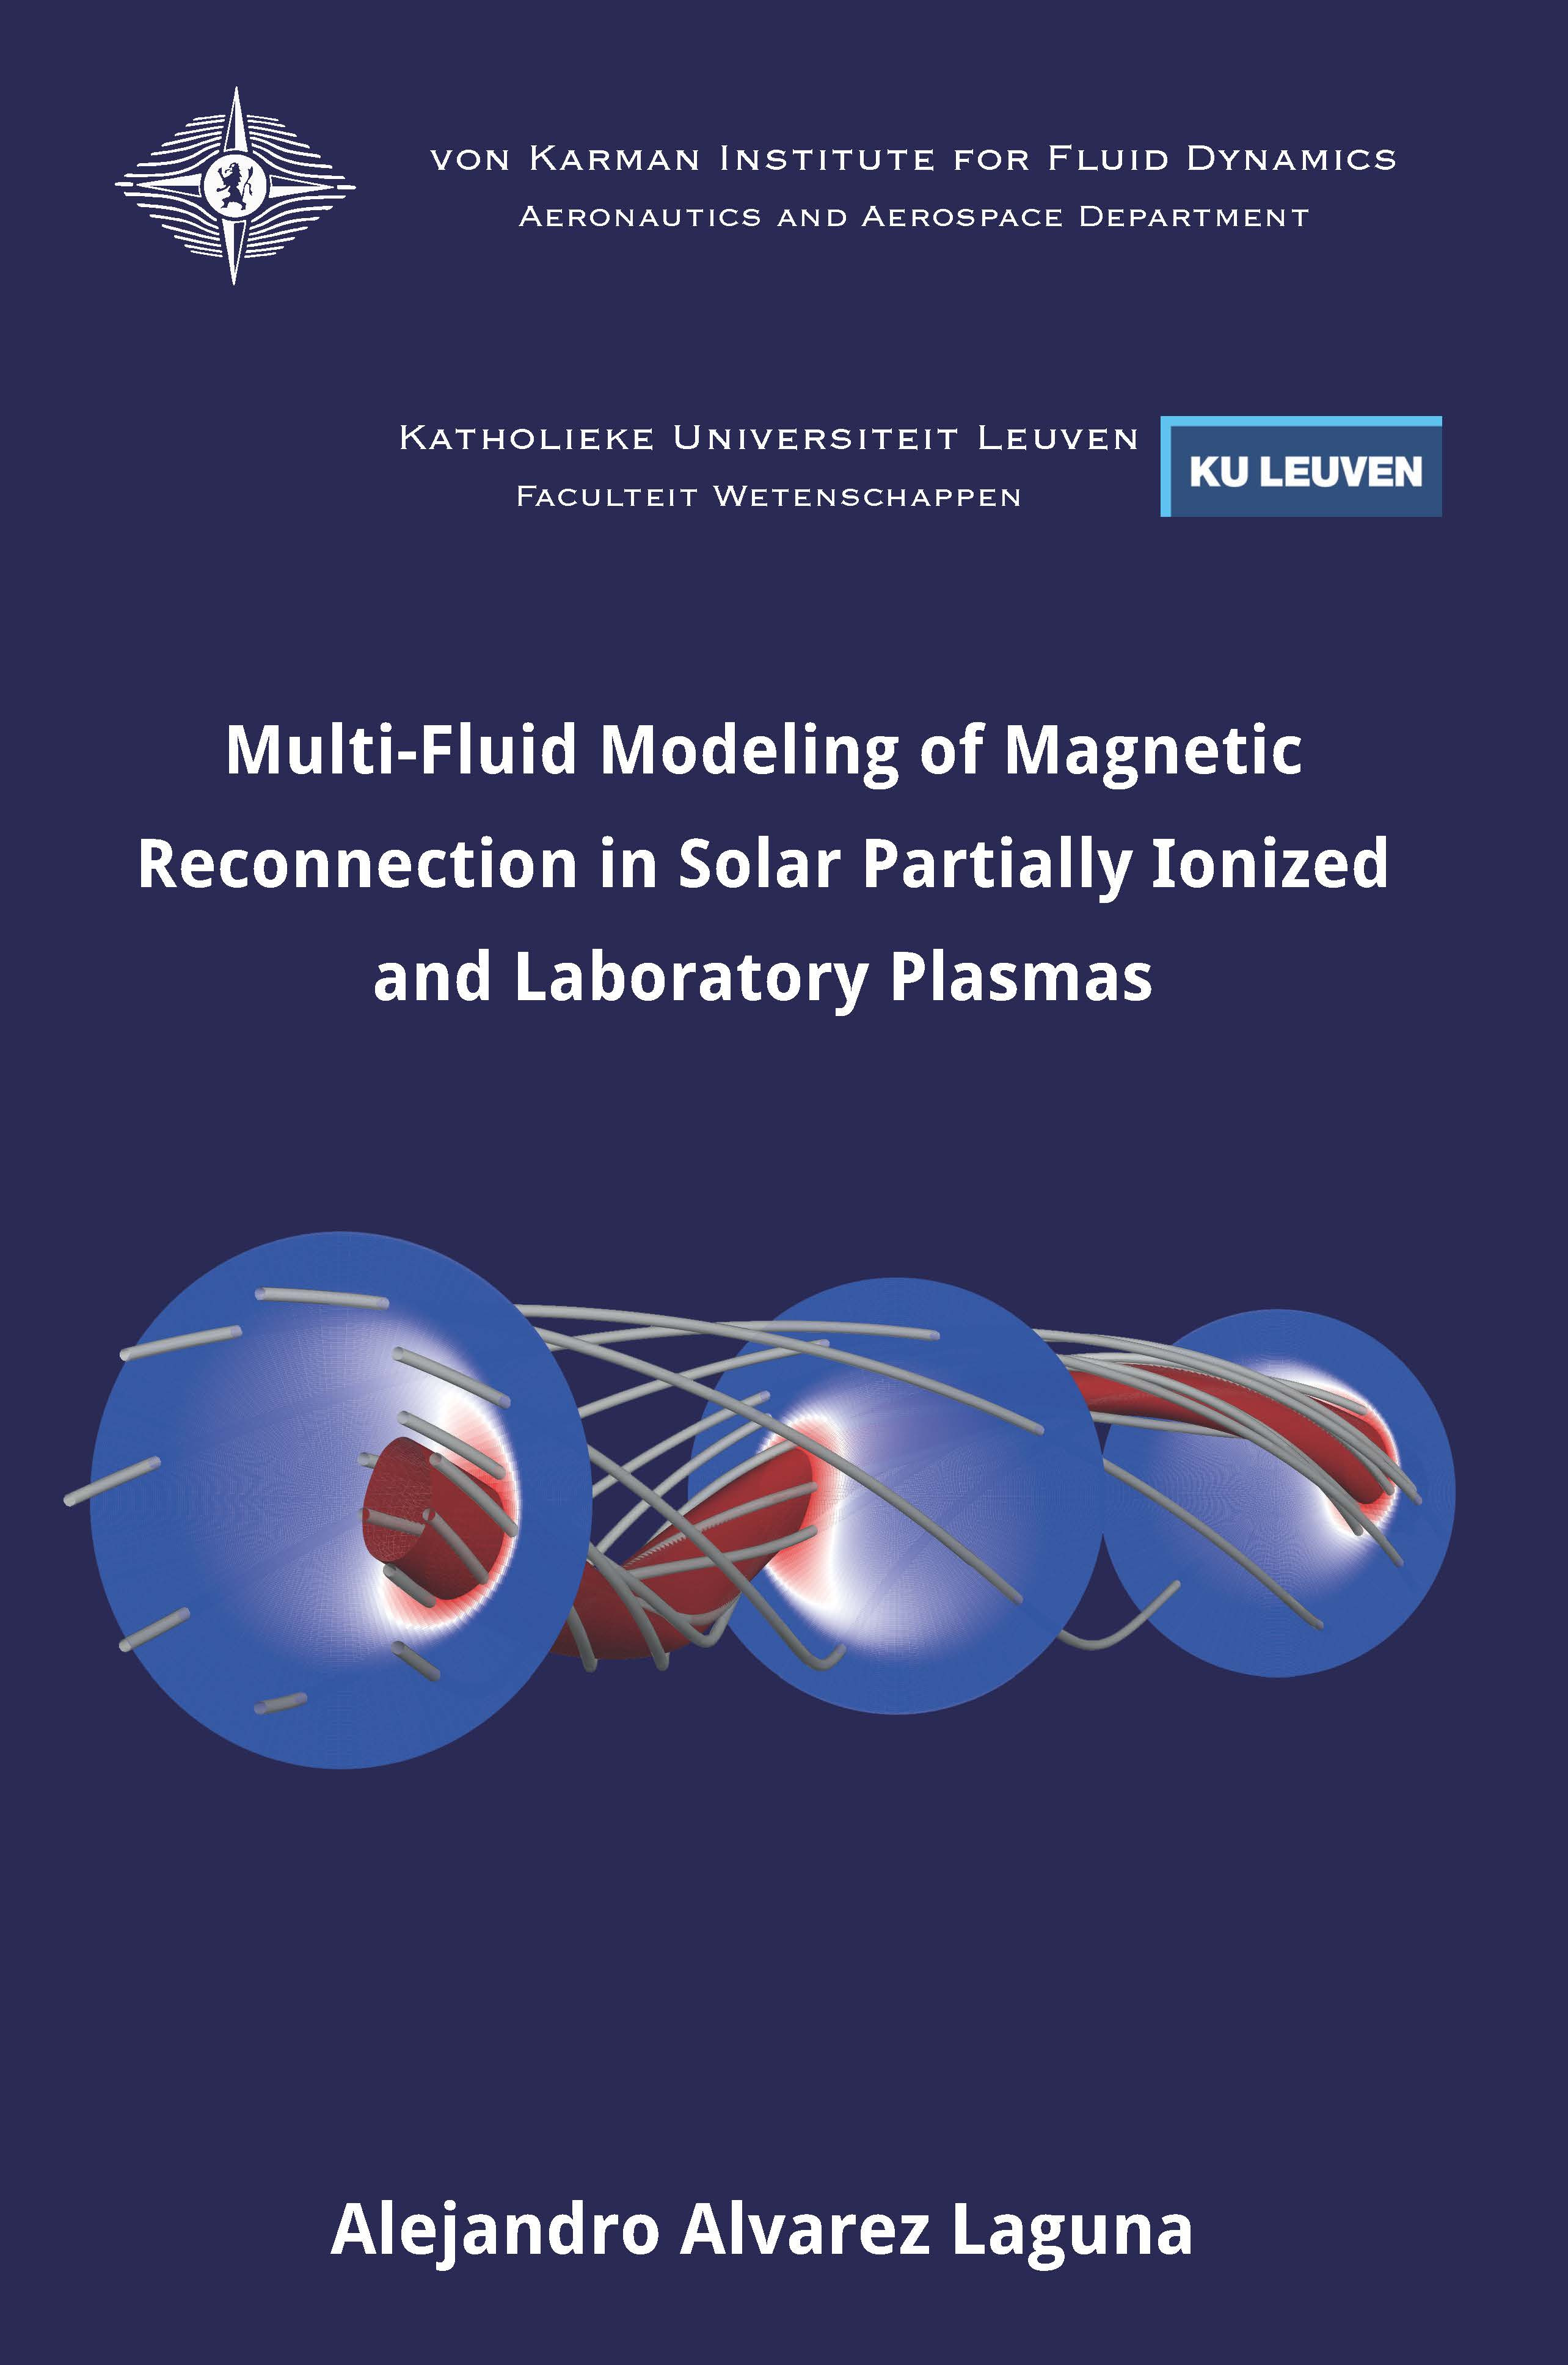 Multi-fluid modeling of magnetic reconnection in solar partially ionized and laboratory plasmas  - Alejandro Alvarez Laguna - Ph.D. Thesis - Free download